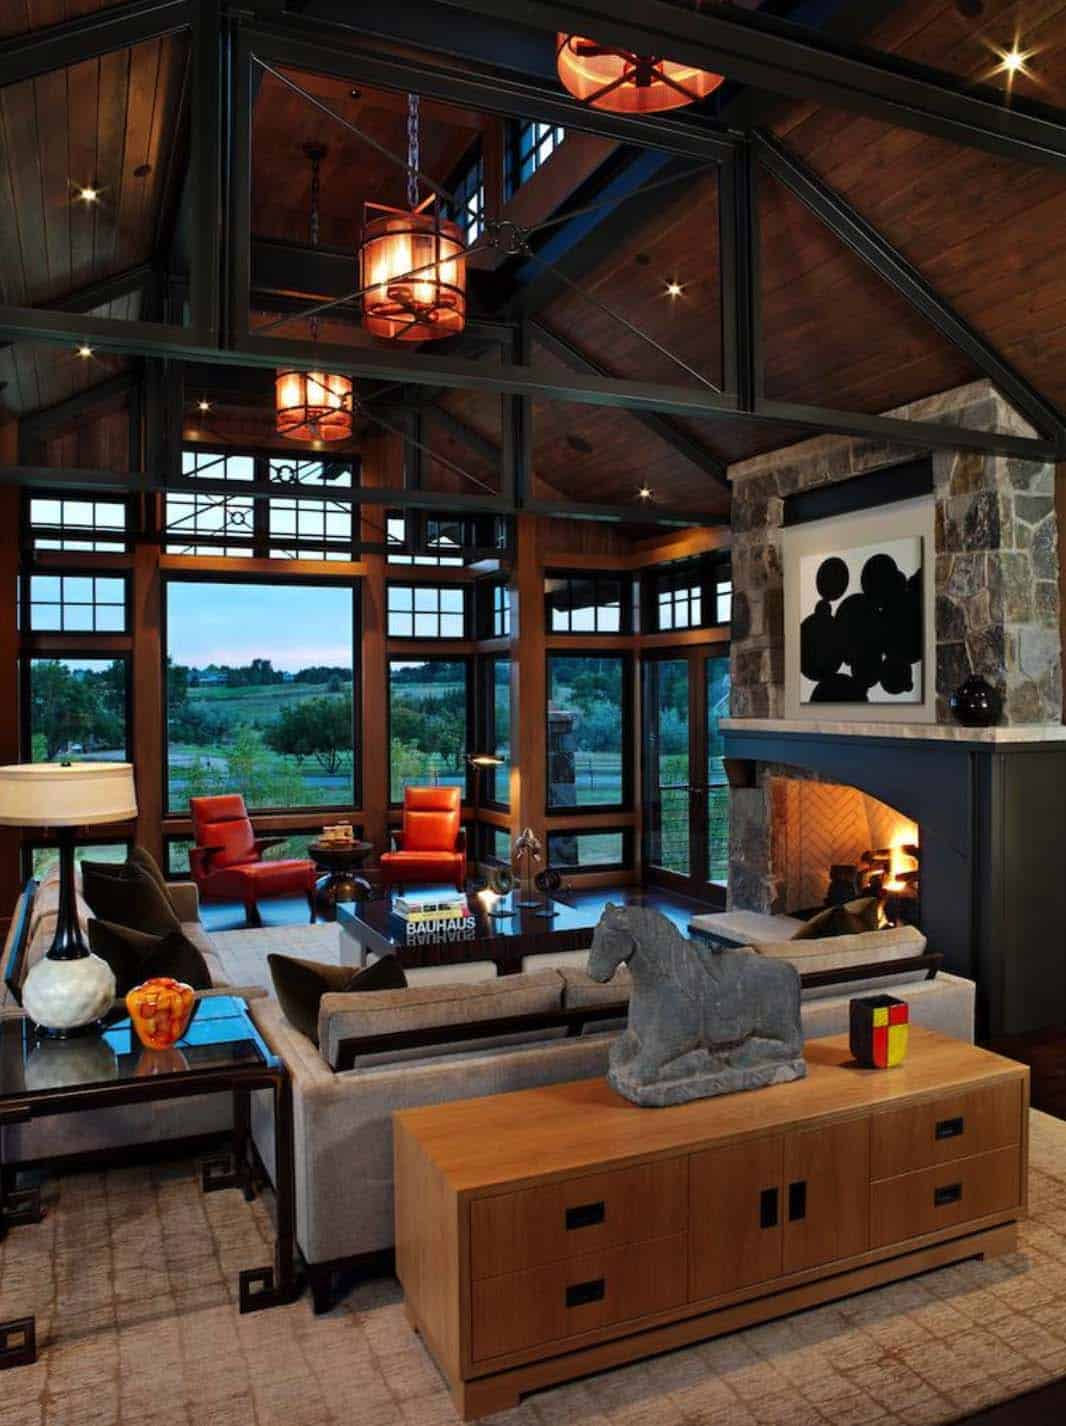 42 Ideas For Living Room Small Rustic Beams Livingroom: Rustic Colorado Mountain Home Offers Refined Contemporary